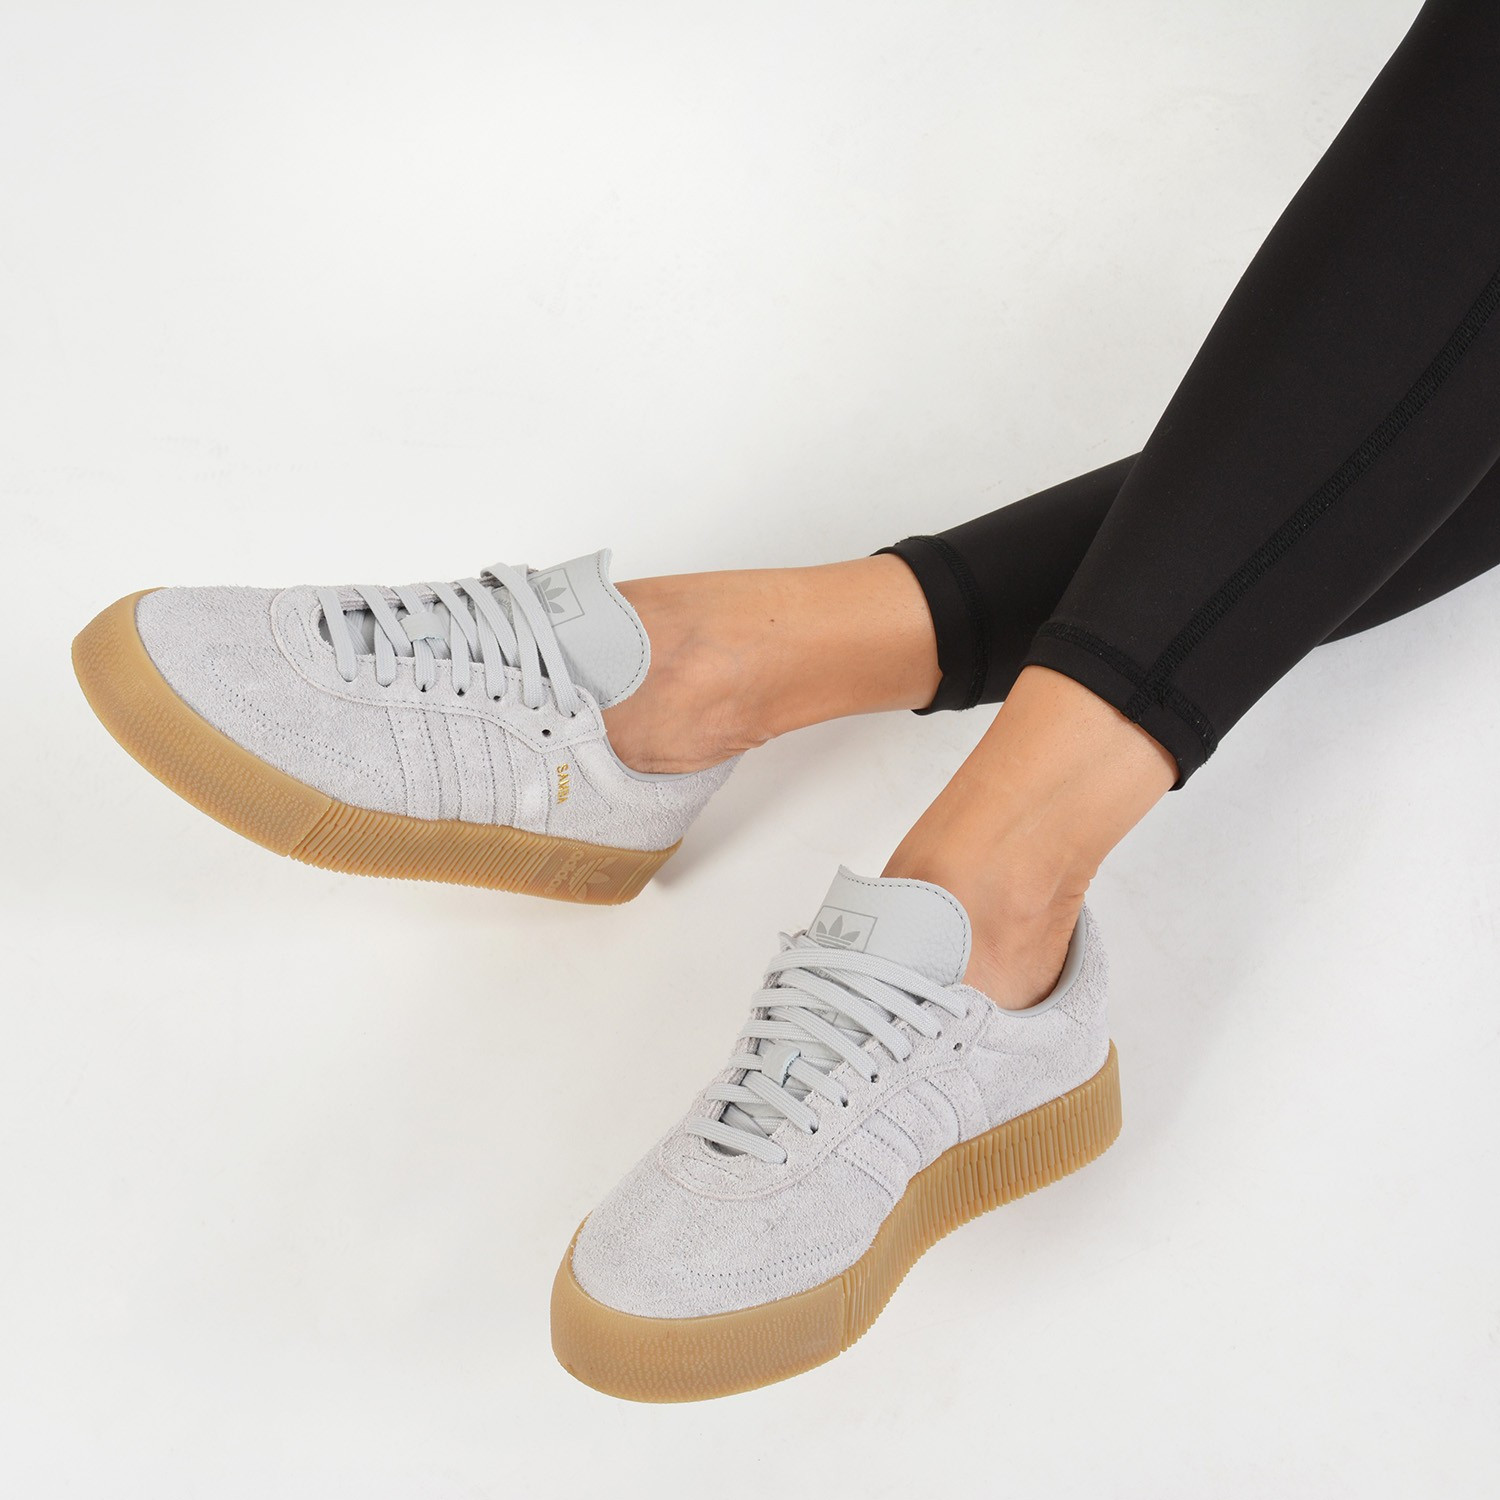 Γυναικεία παπούτσια adidas Originals Sambarose Platform Shoes (9000012414_33929) | My Lady Shoes